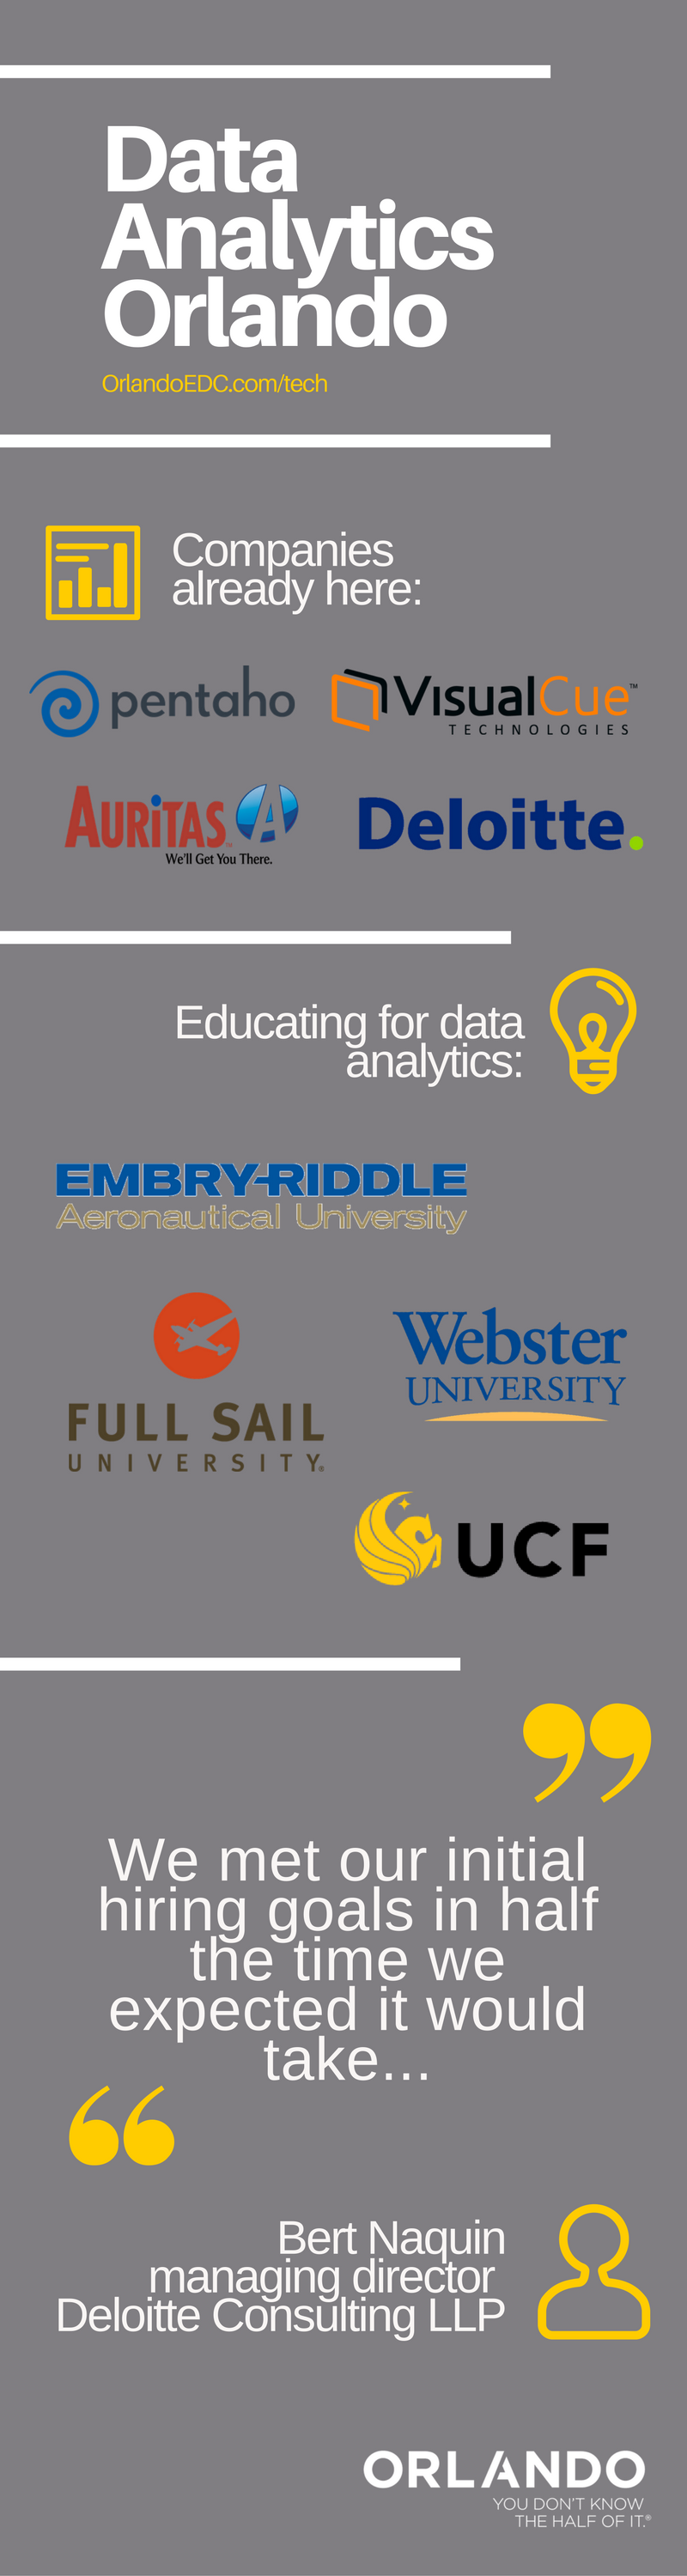 Data Analytics Orlando (1).png